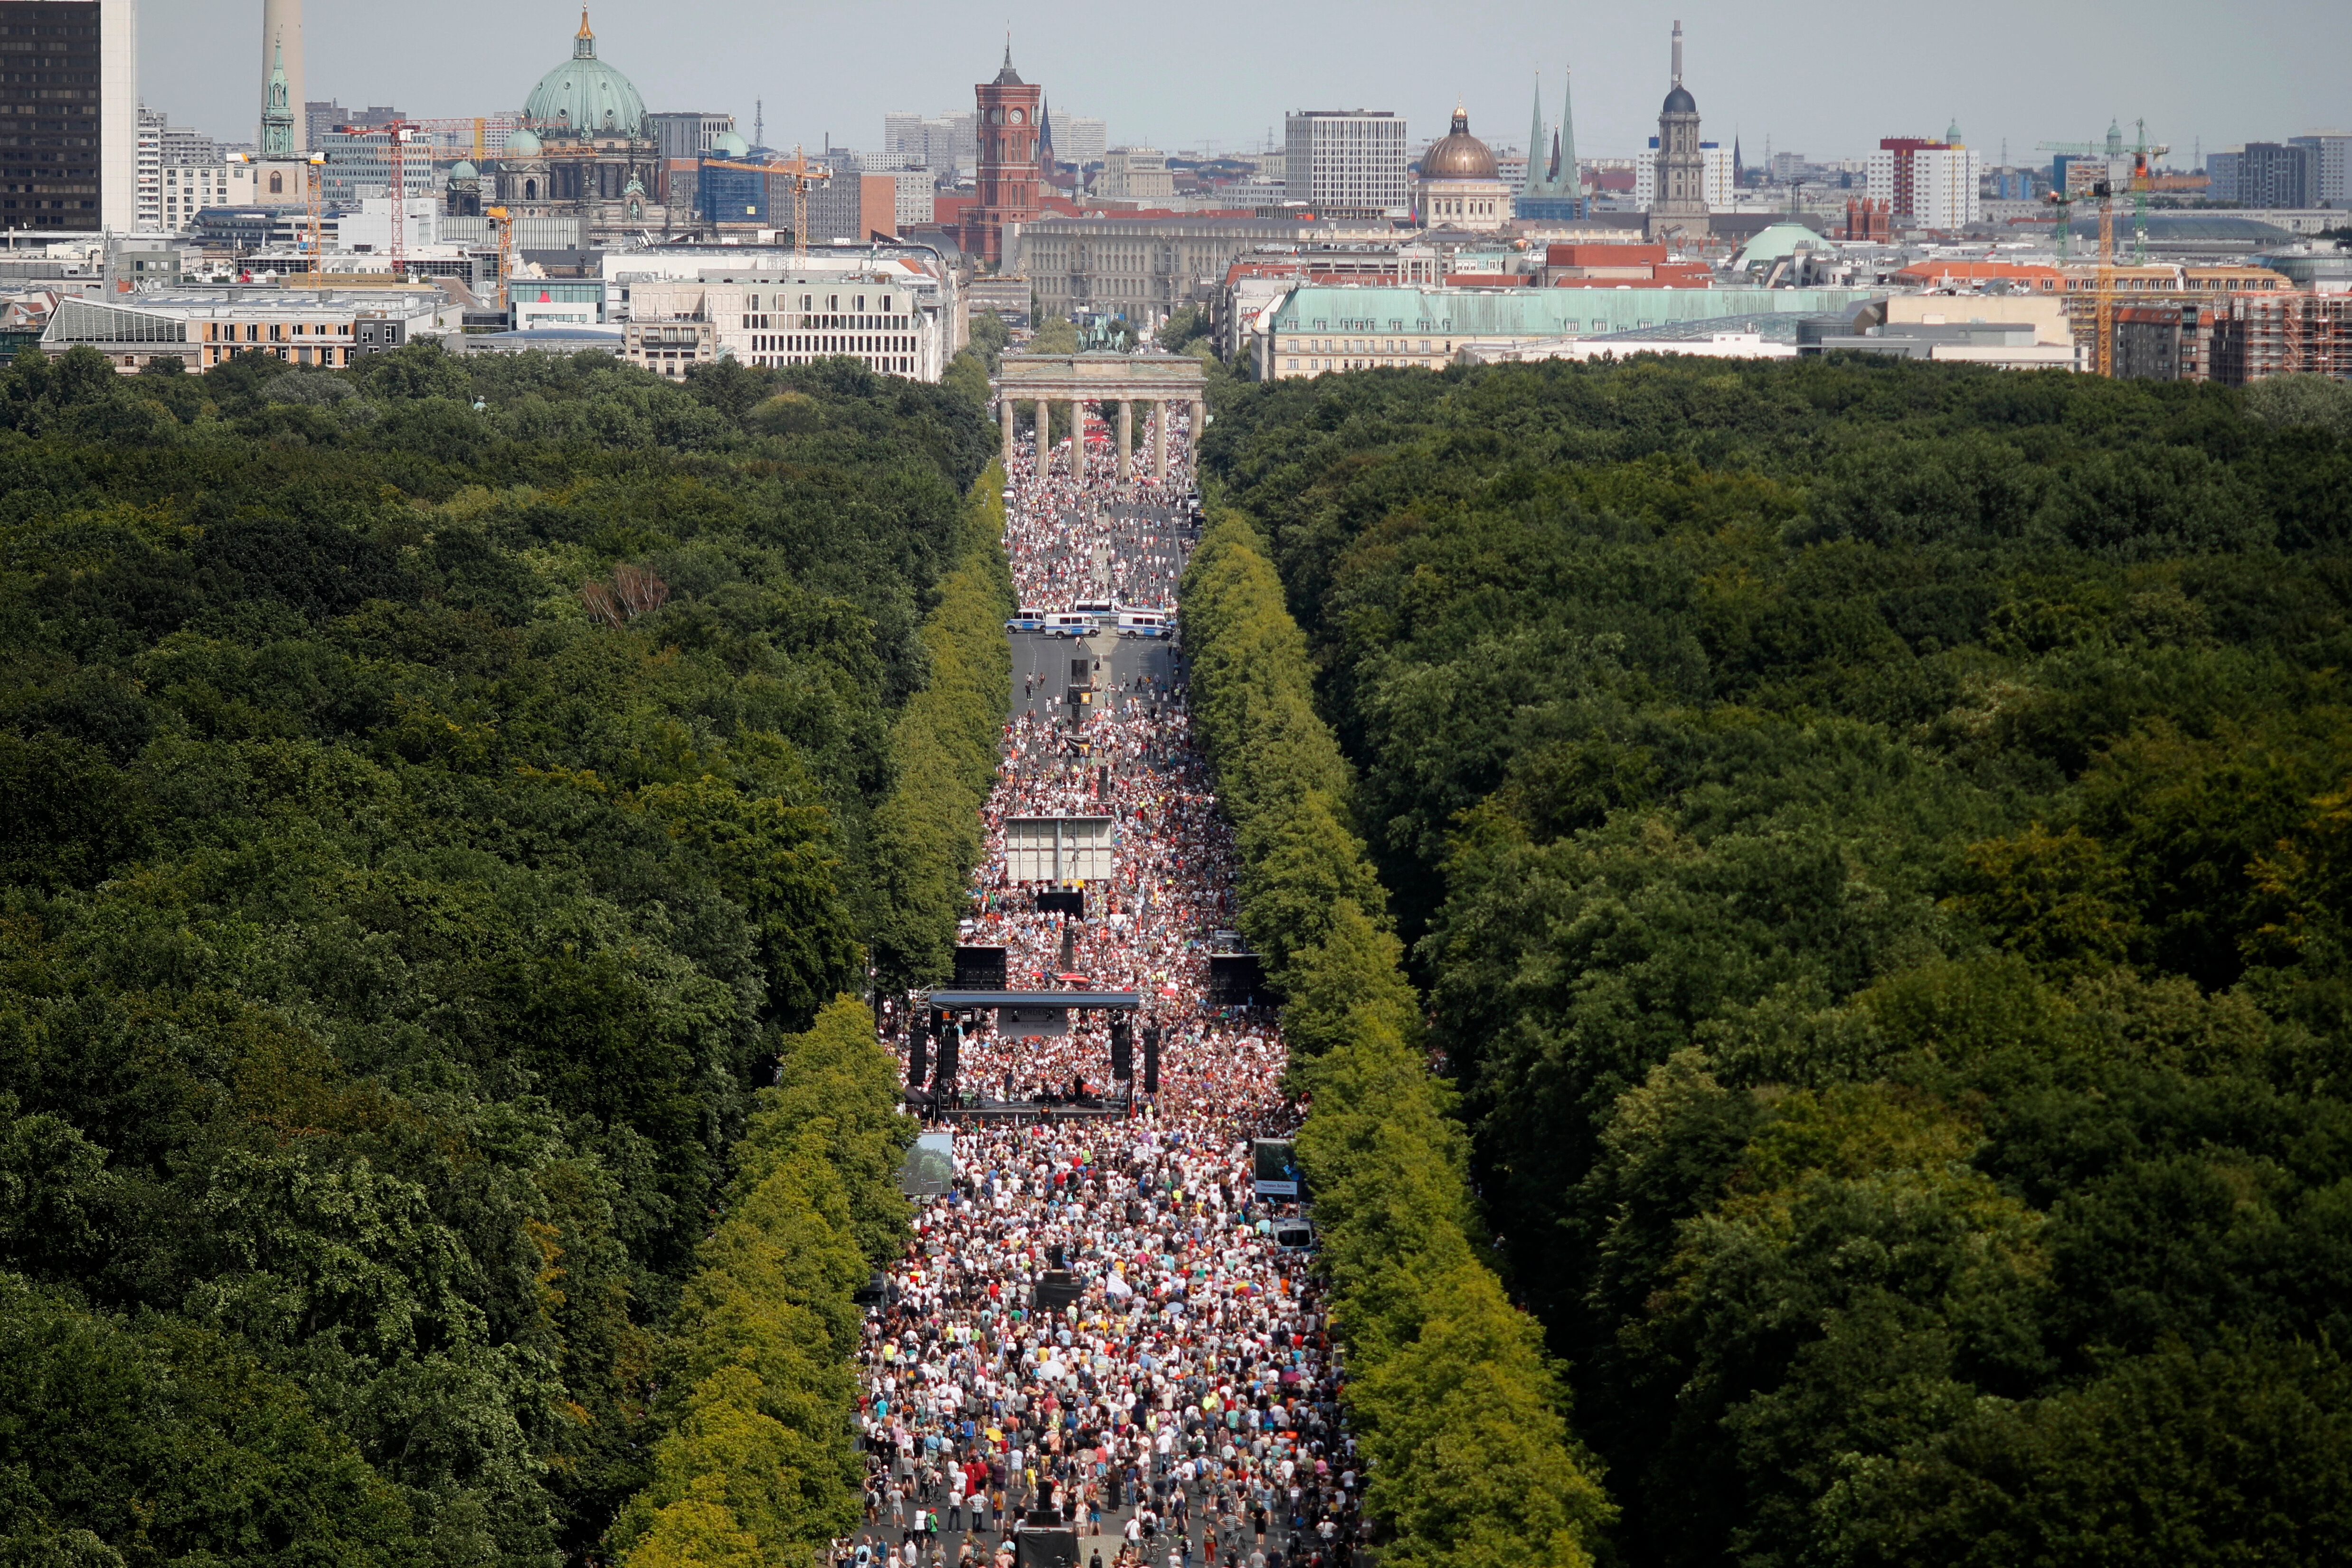 People gather at the Brandenburg gate for a demonstration against coronavirus restrictions in Berlin, Germany, Saturday, Aug.